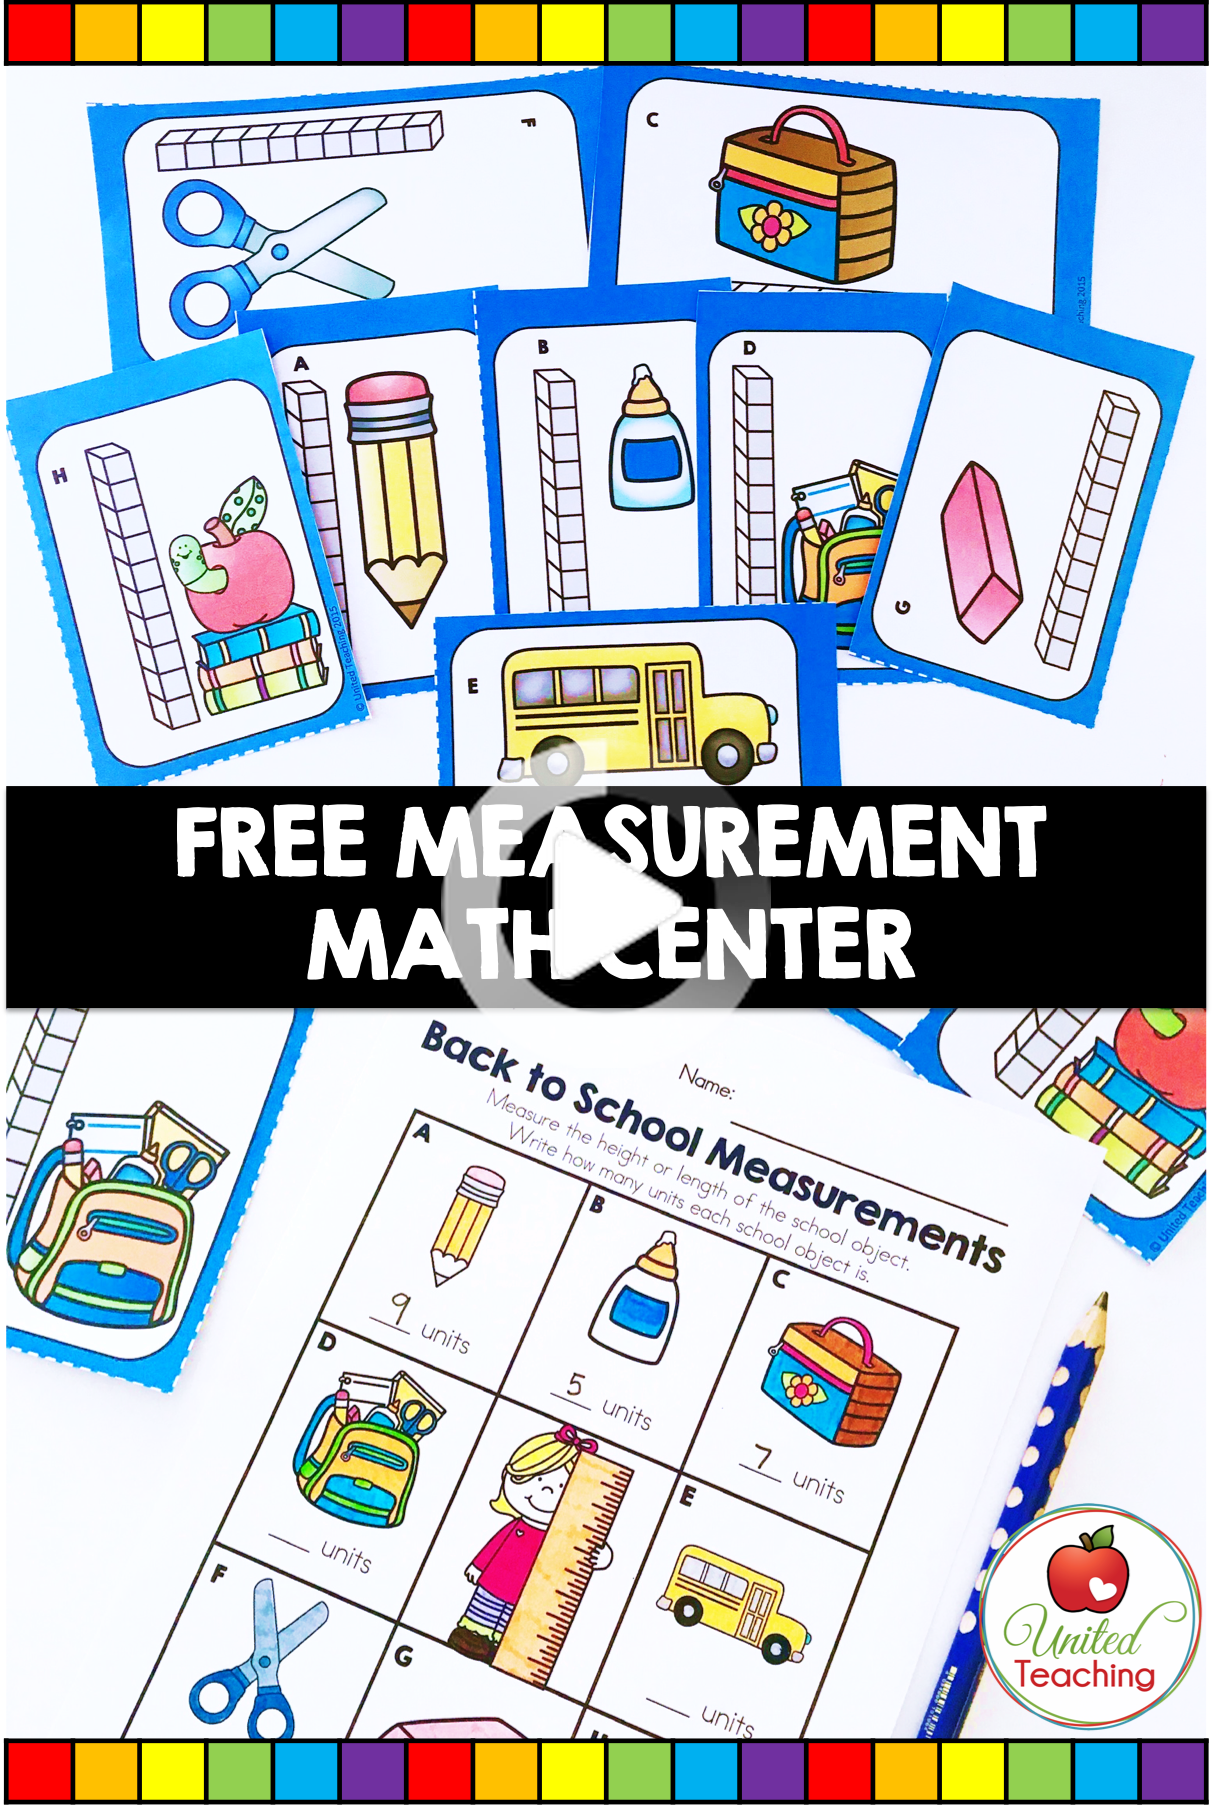 Back To School Measurement Math Center In